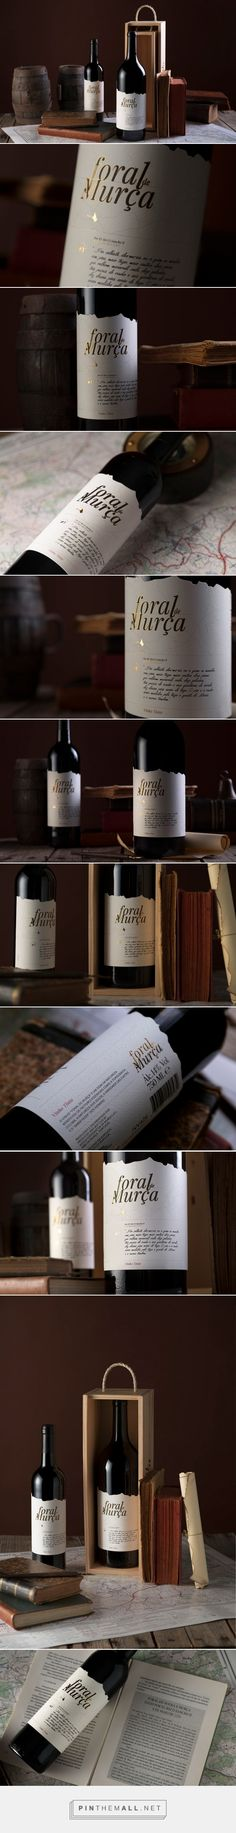 Foral de Murça - Packaging of the World - Creative Package Design Gallery…